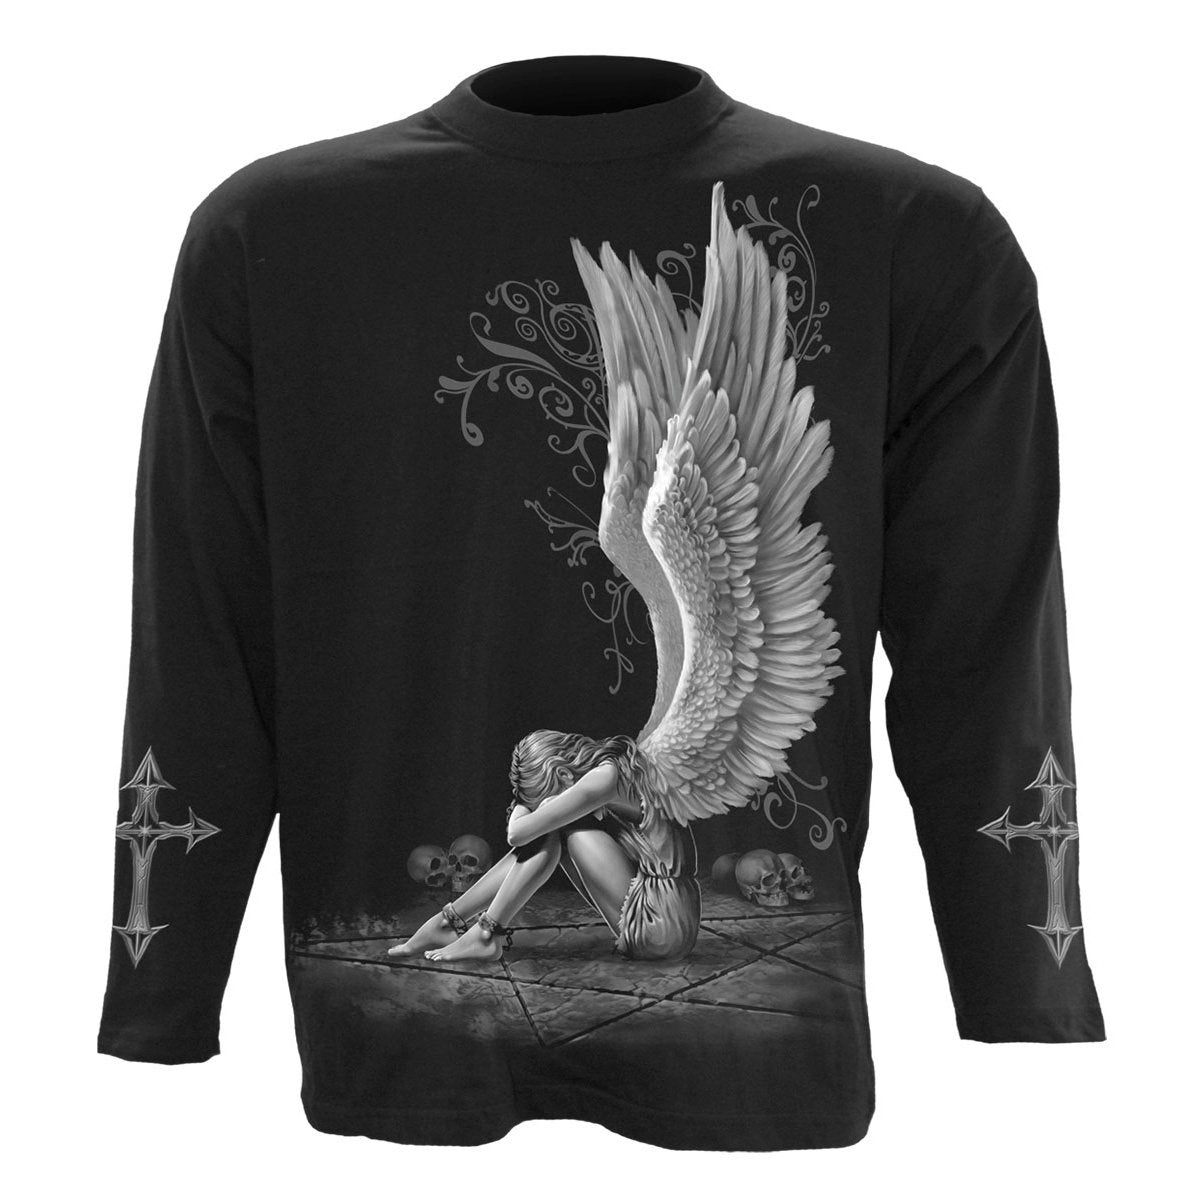 Angel Of Sorrow Men's Black Longsleeve Shirt - Rebels Depot